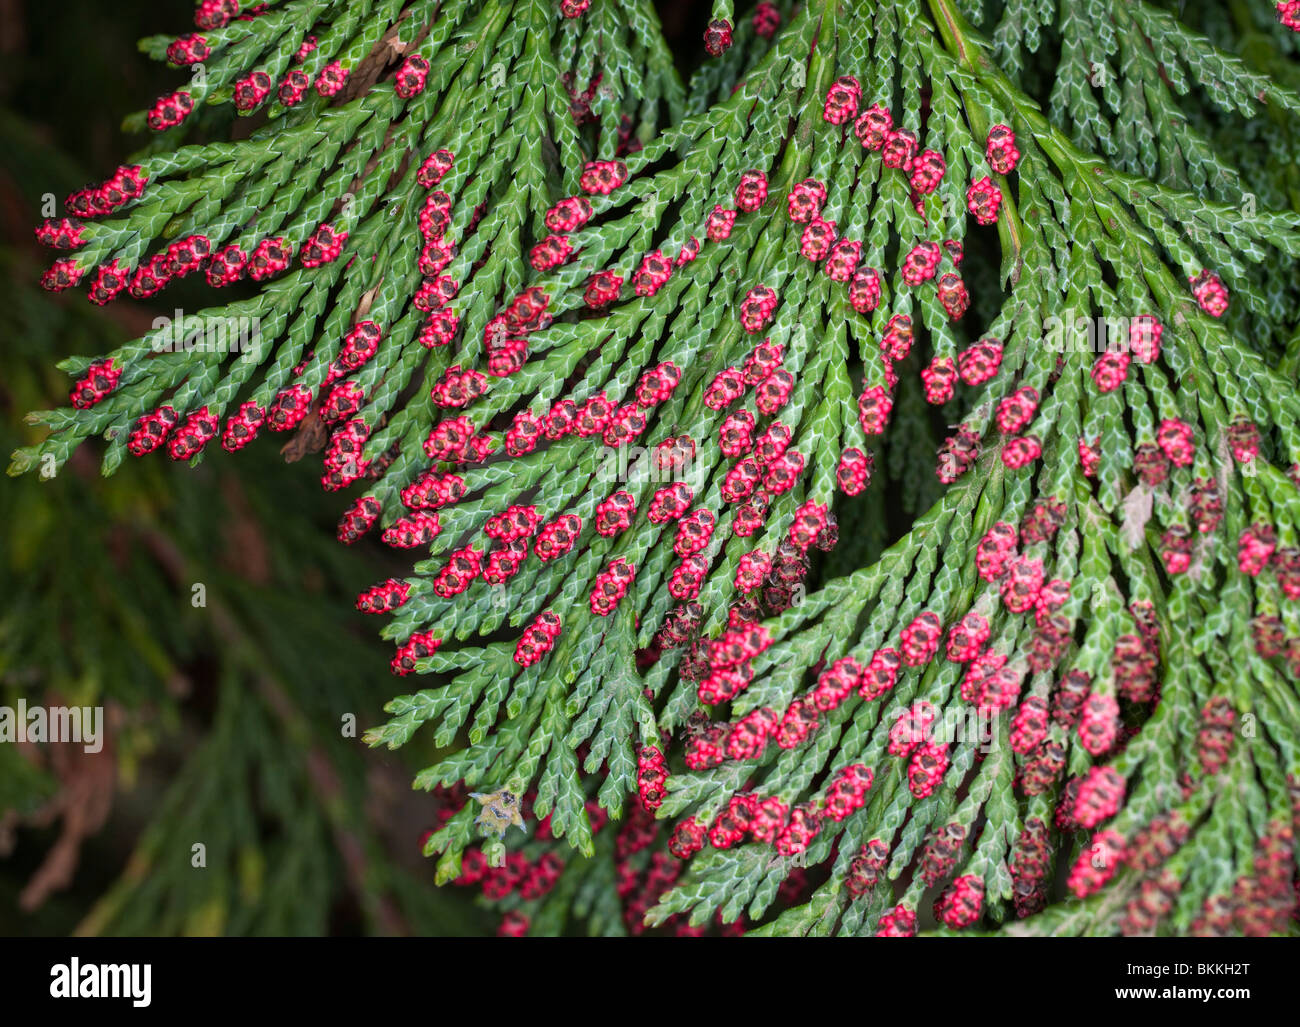 red cone buds on conifer tree / bush - Stock Image